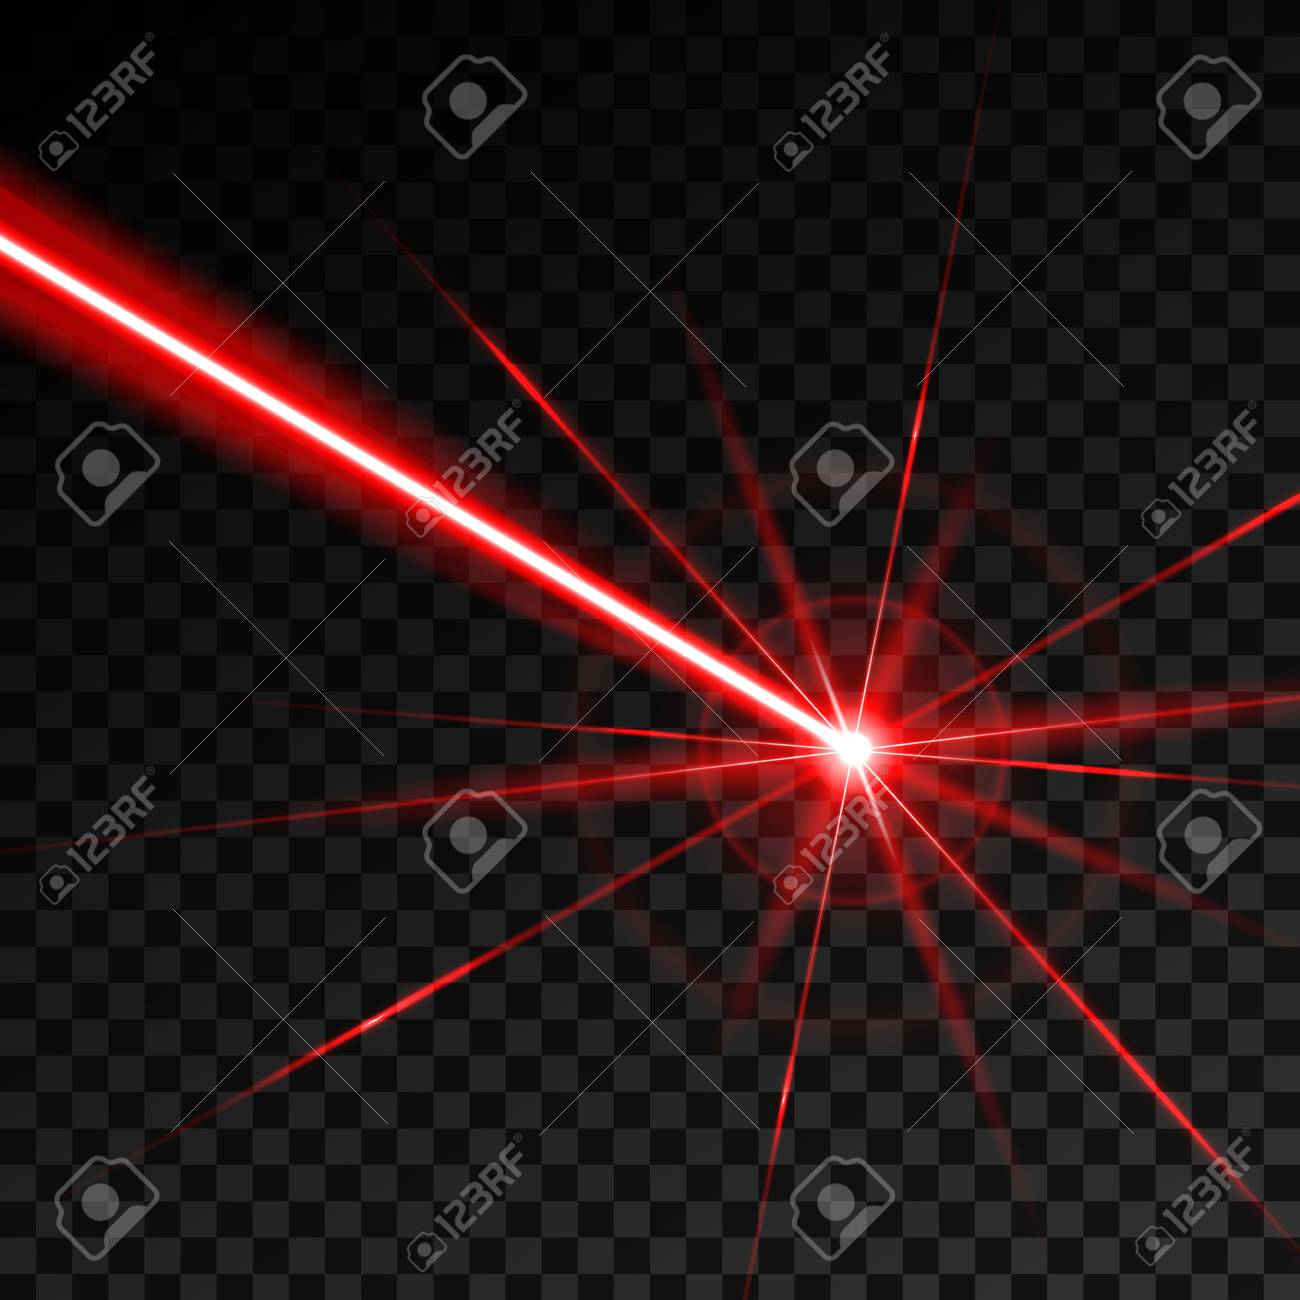 Creative vector illustration of laser security beam isolated on transparent background. Art design shine light ray. Abstract concept graphic element of glow target flash neon line - 102521935